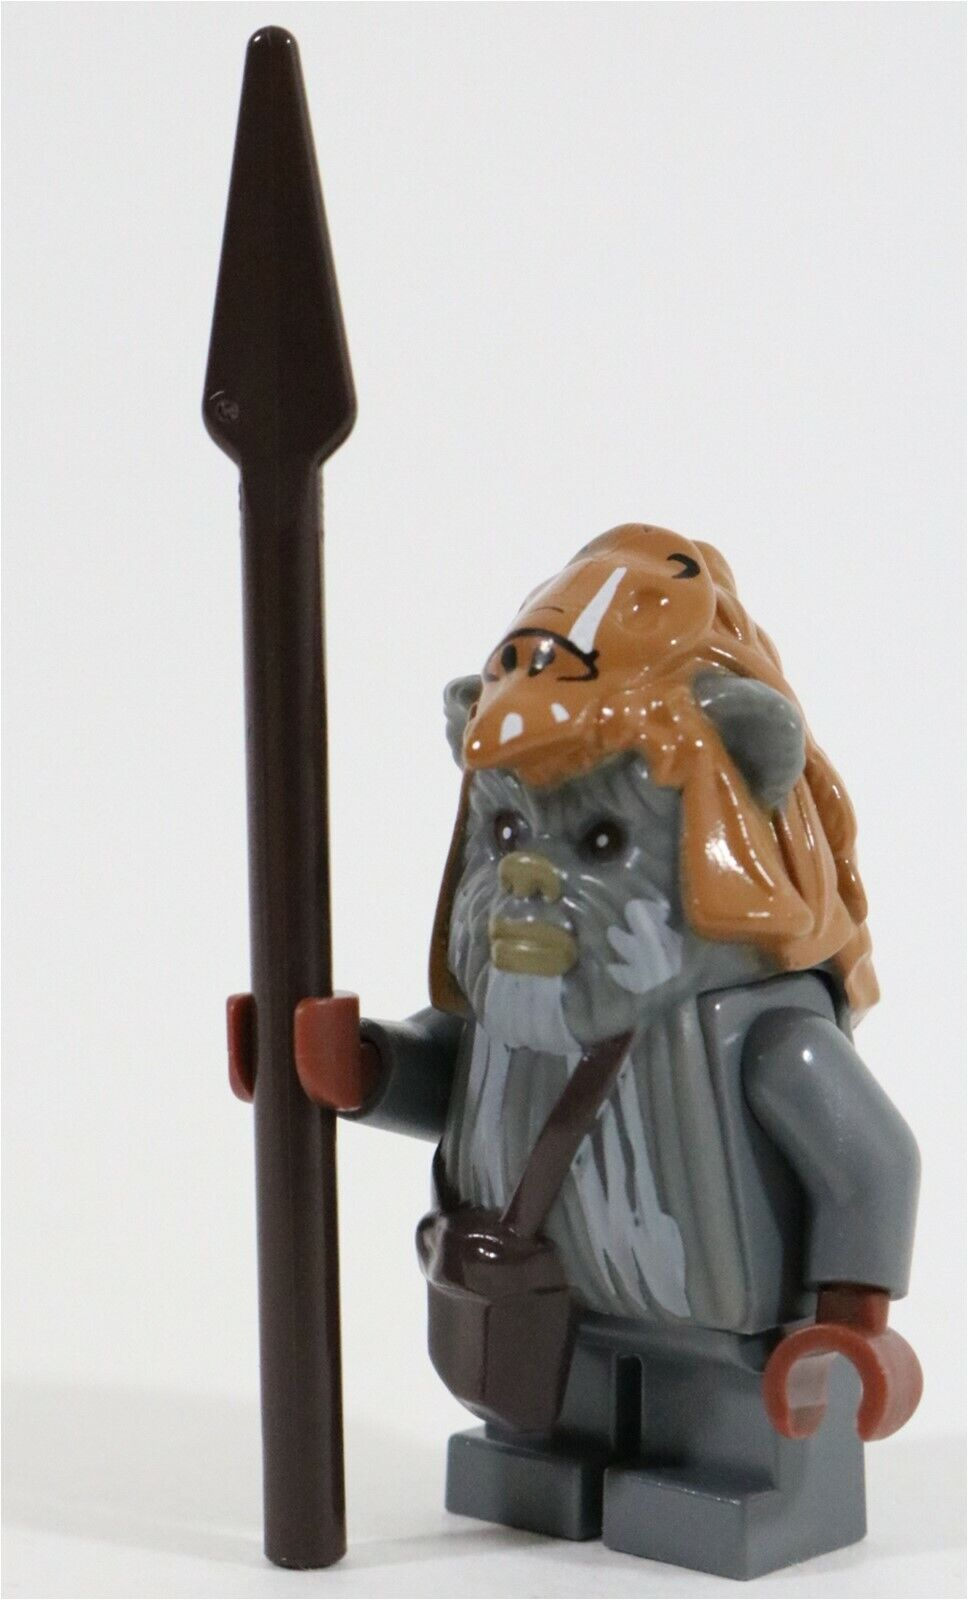 NEW RARE LEGO STAR WARS TEEBO EWOK MINIFIGURE 10236 EWOK VILLAGE